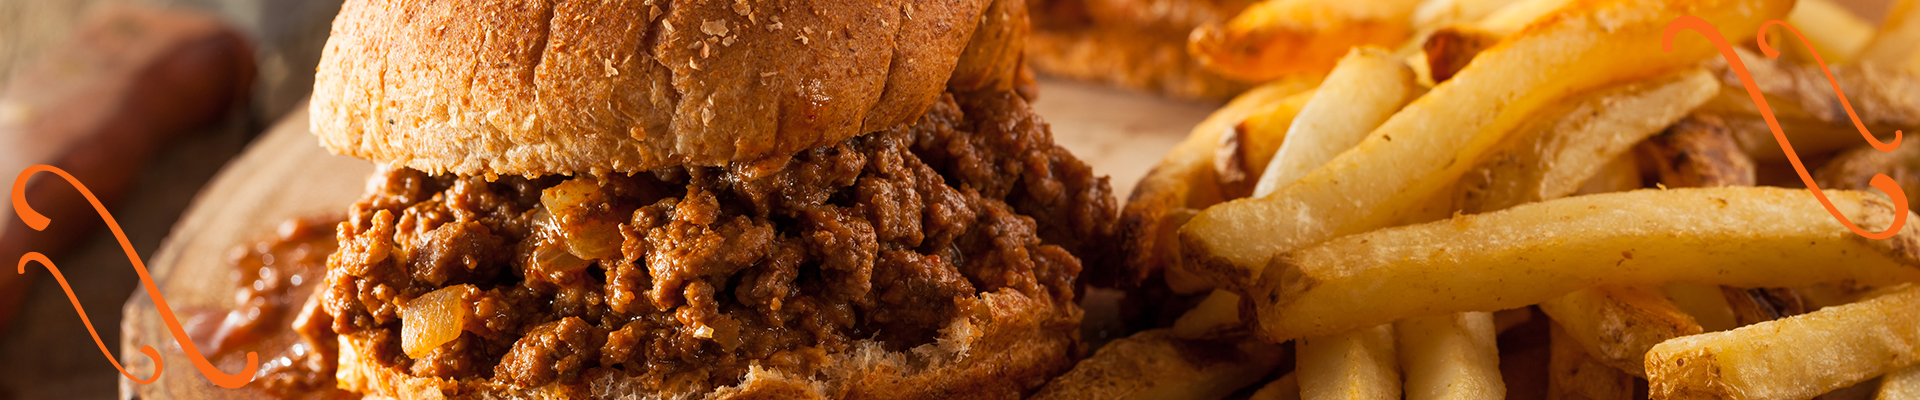 Sloppy joes - an easy wintertime recipe to make while RVing